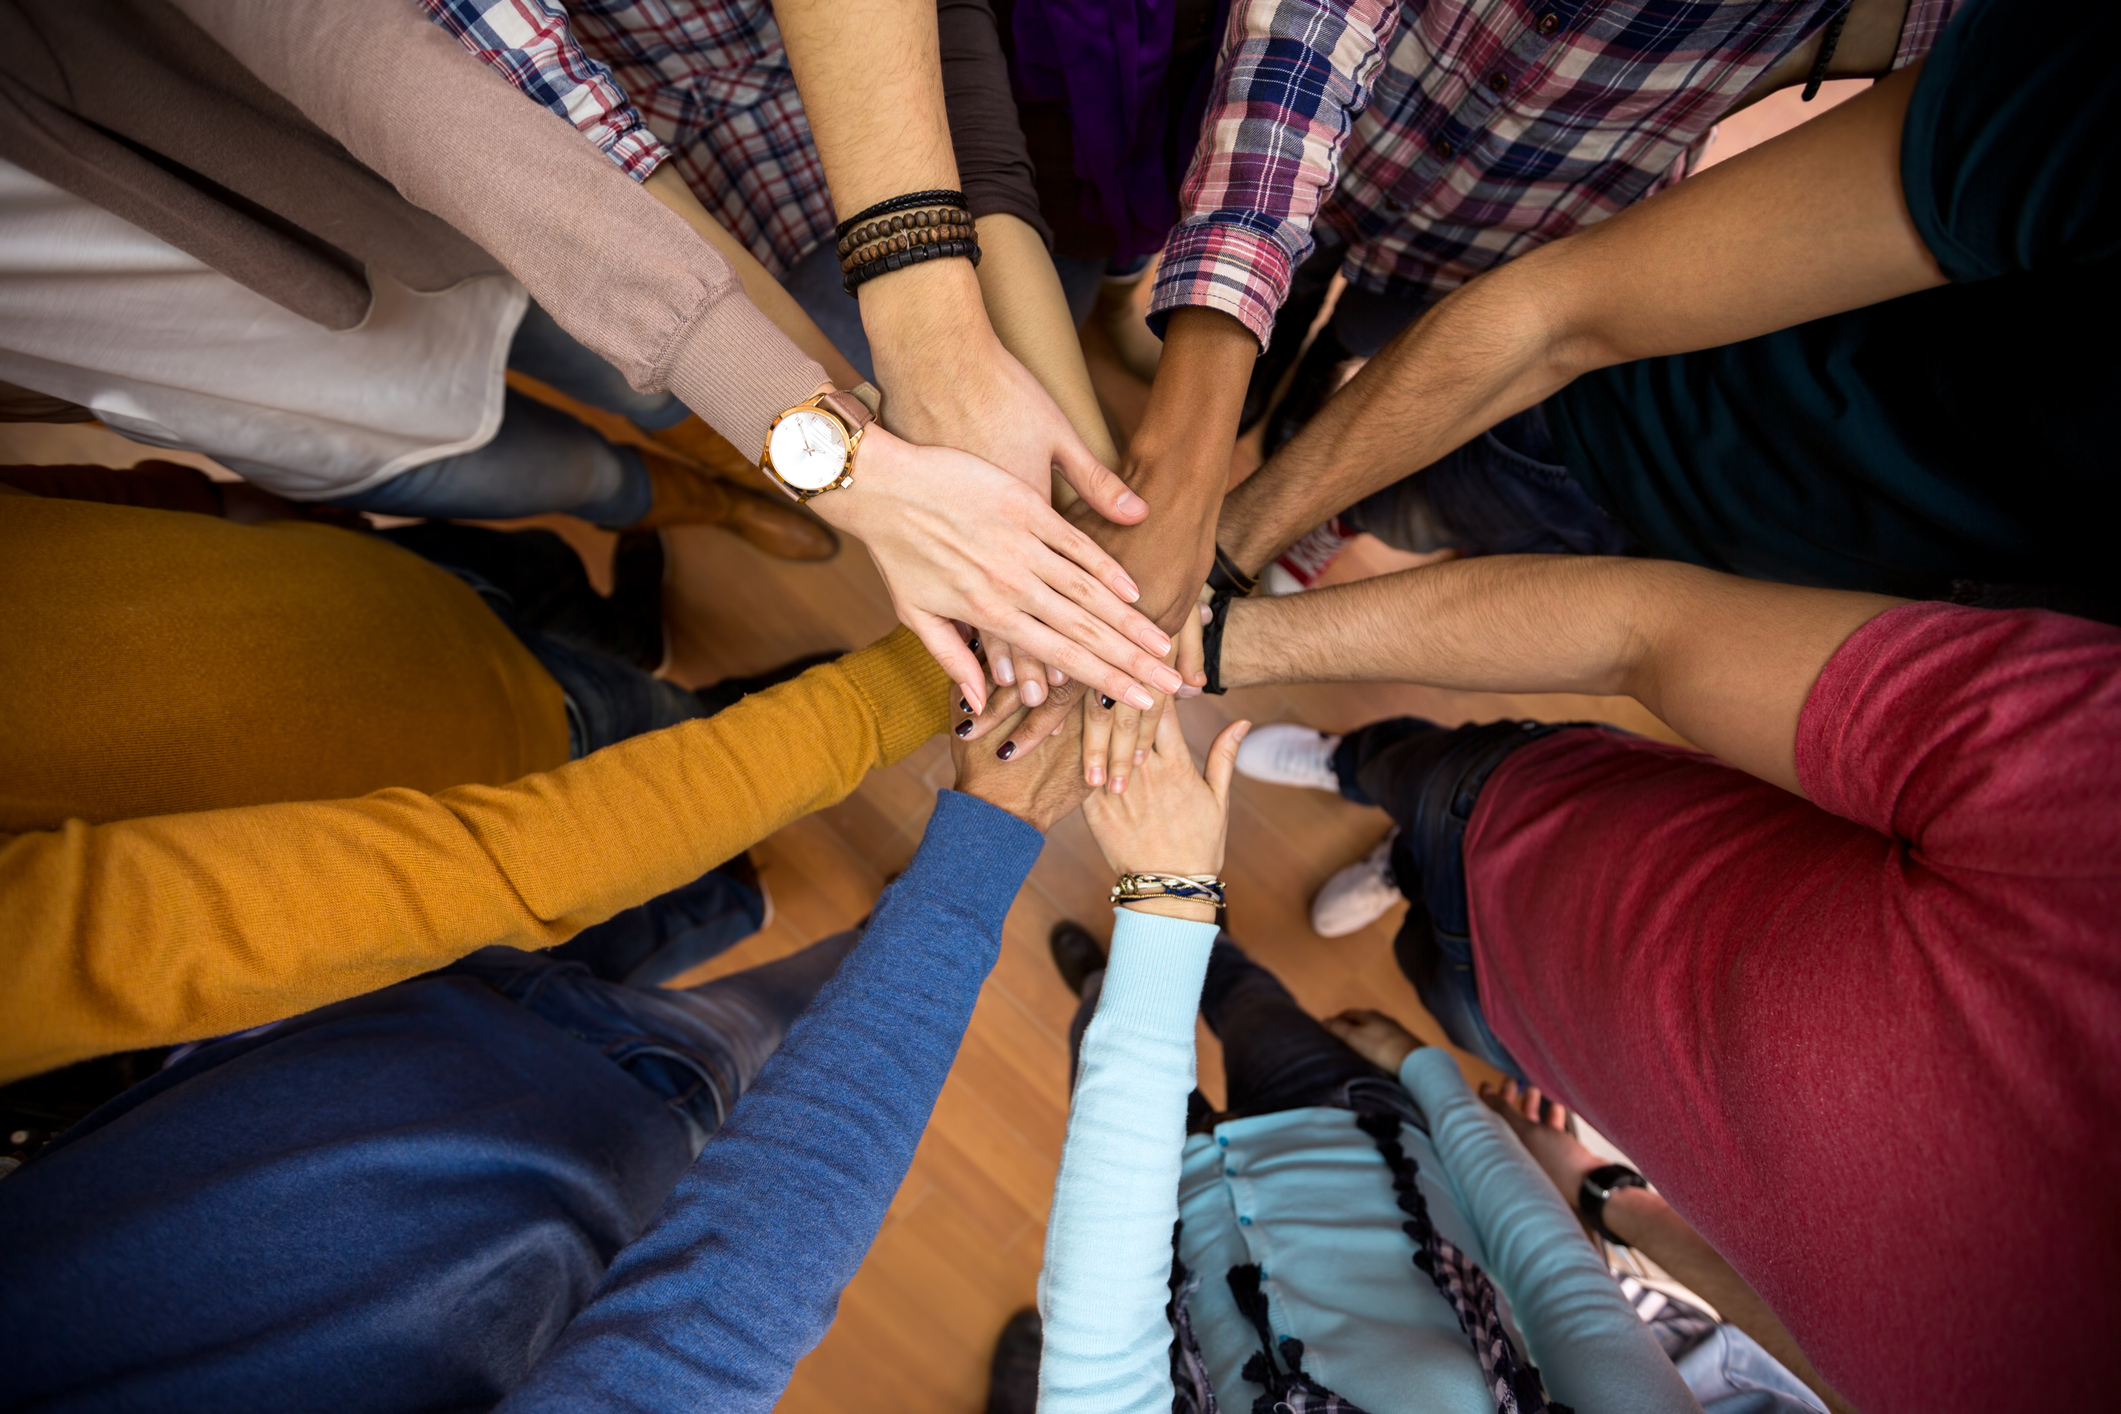 All hands together, united for racial equality. (Getty Image)